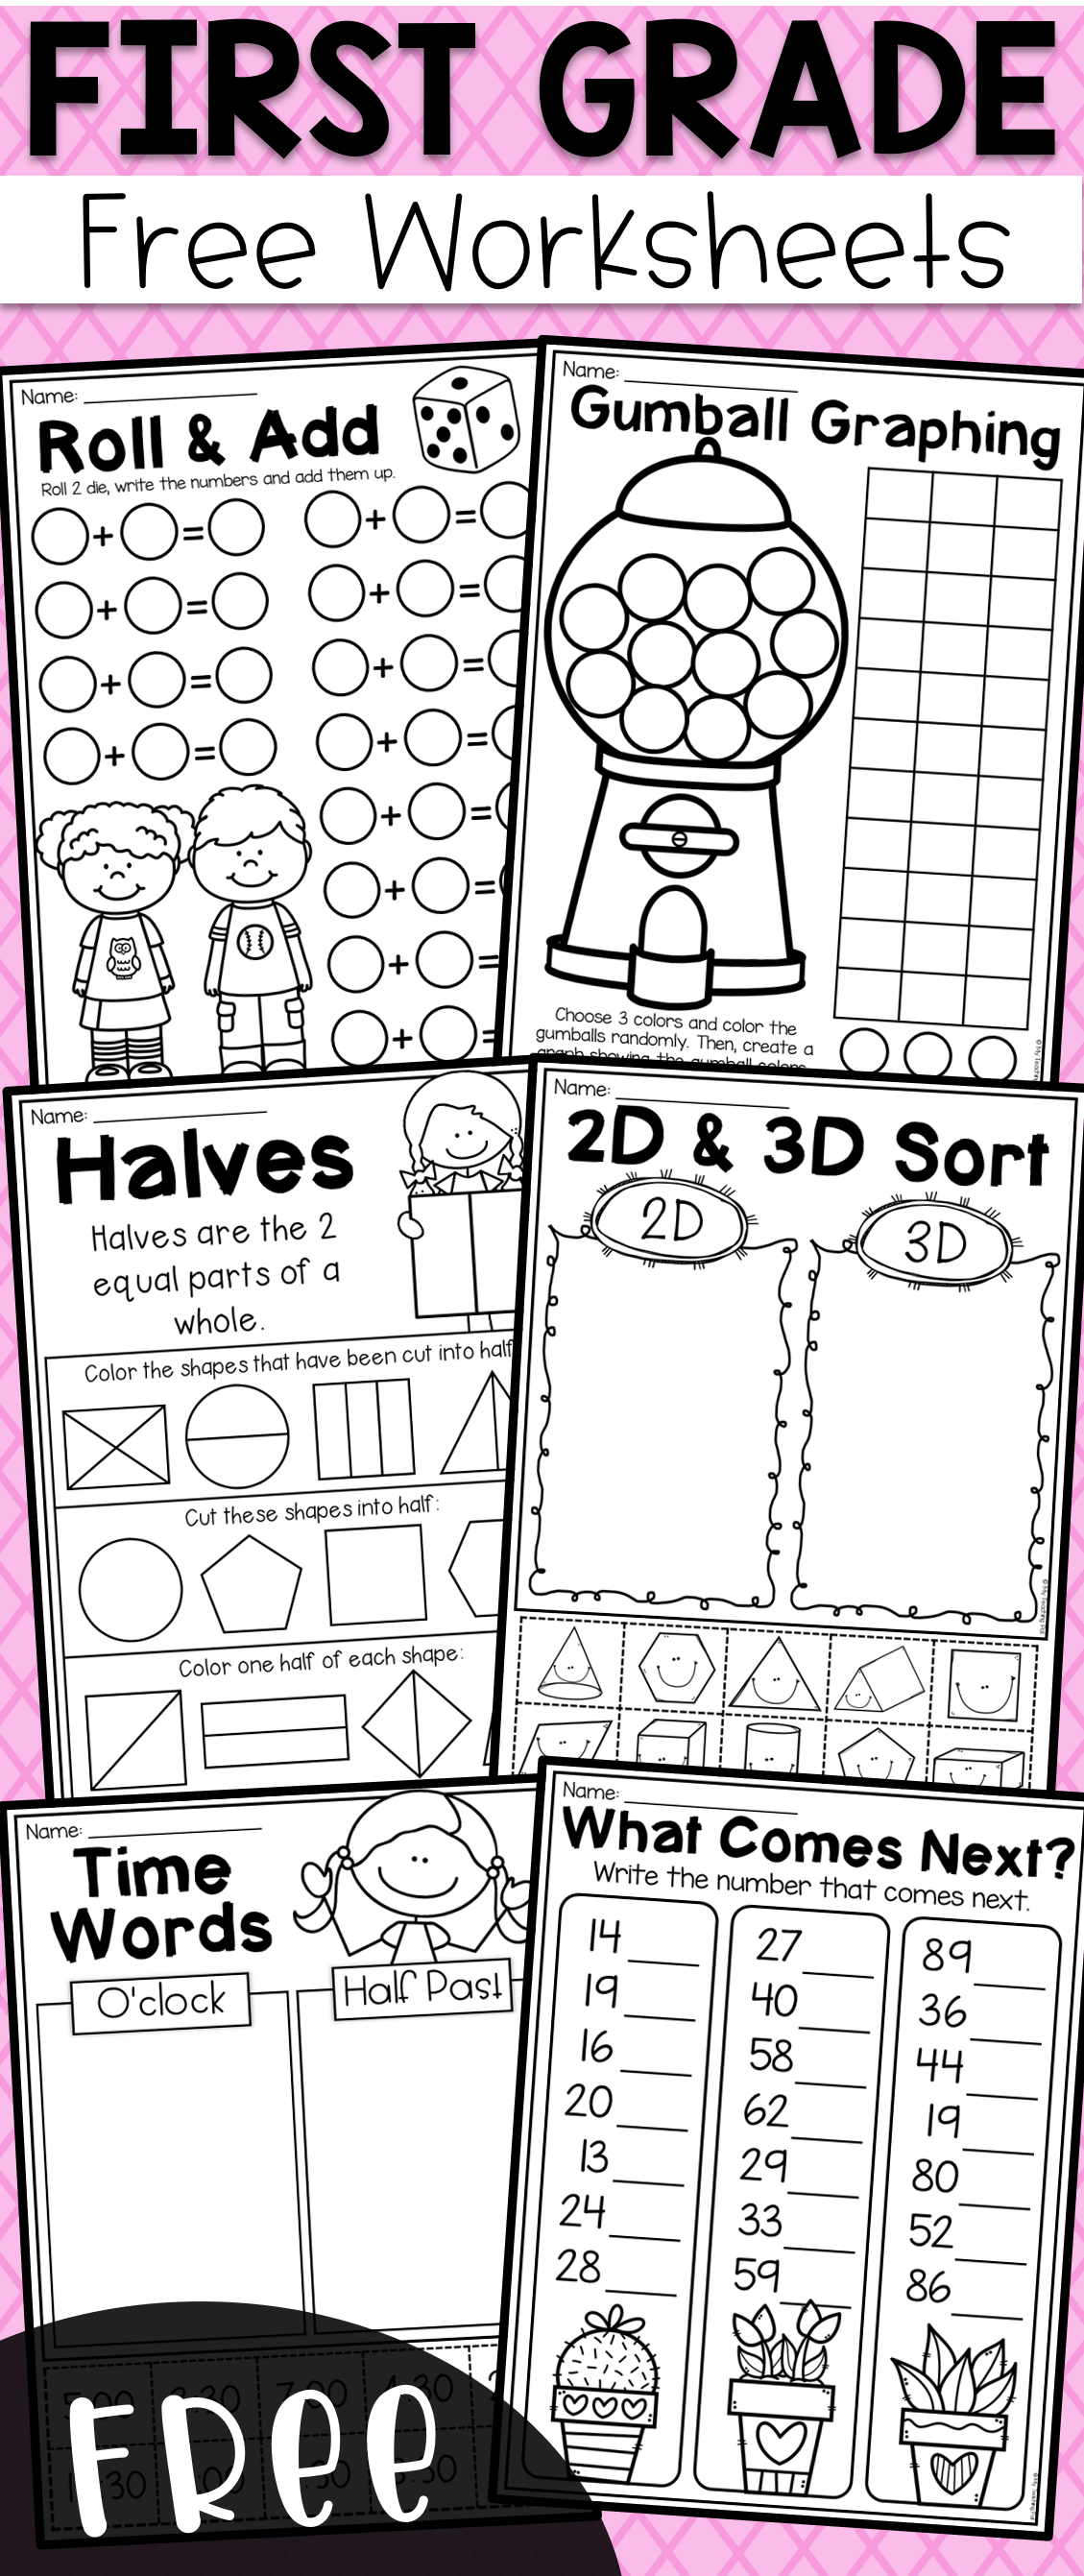 Verb Worksheets For First Grade